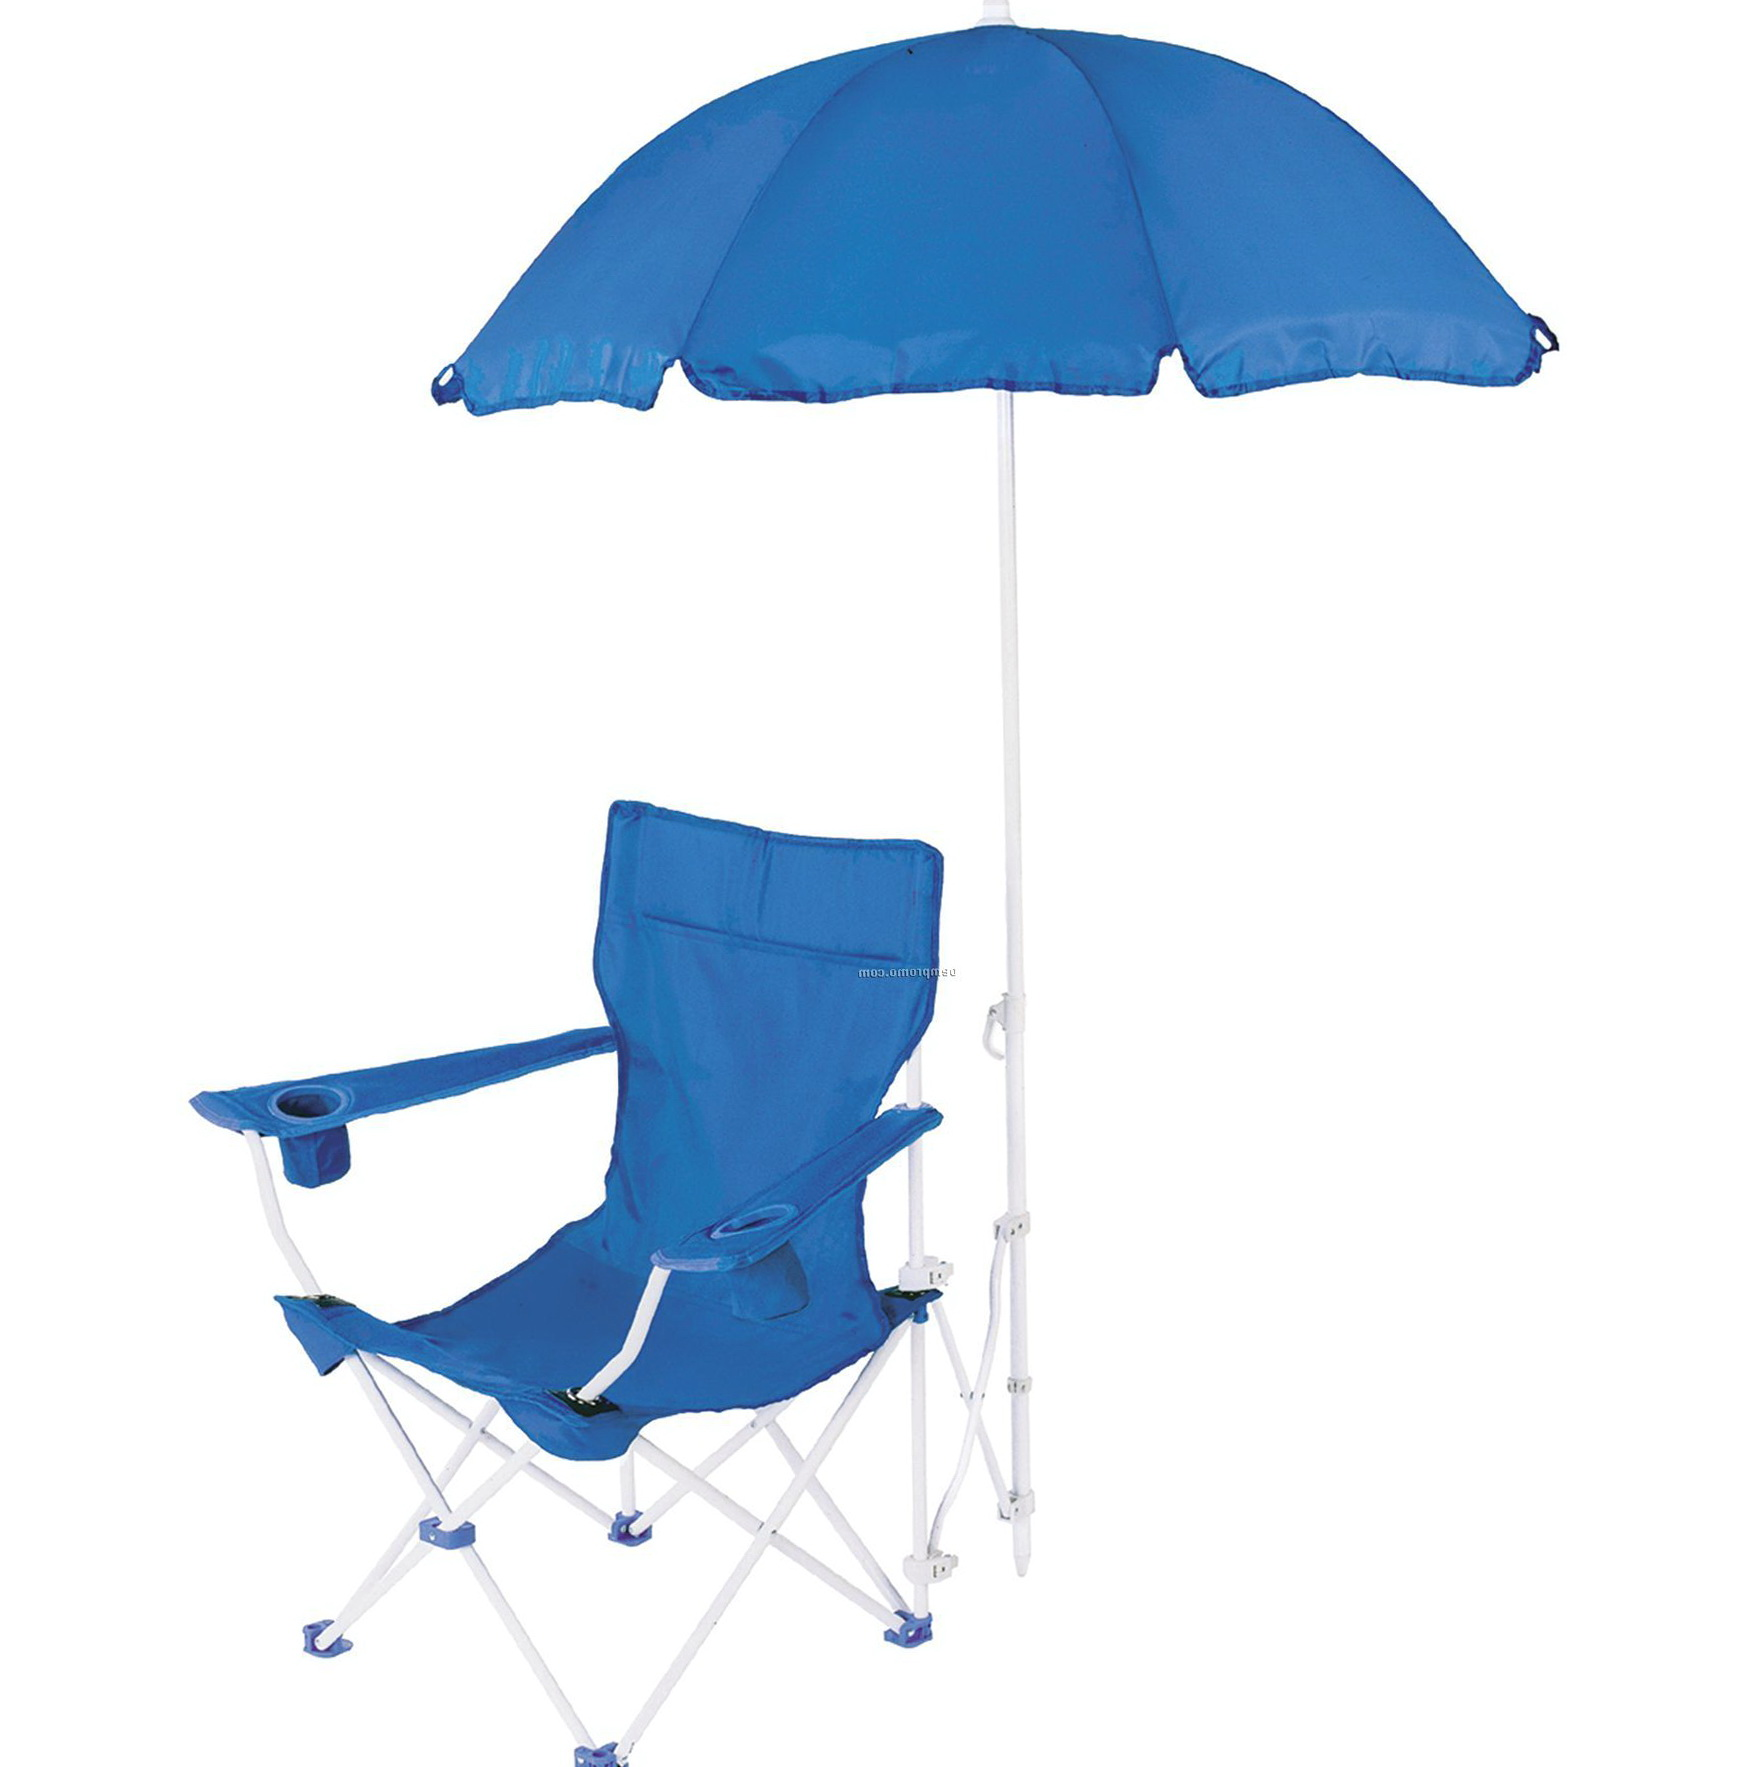 Outdoor Folding Chairs With Umbrella